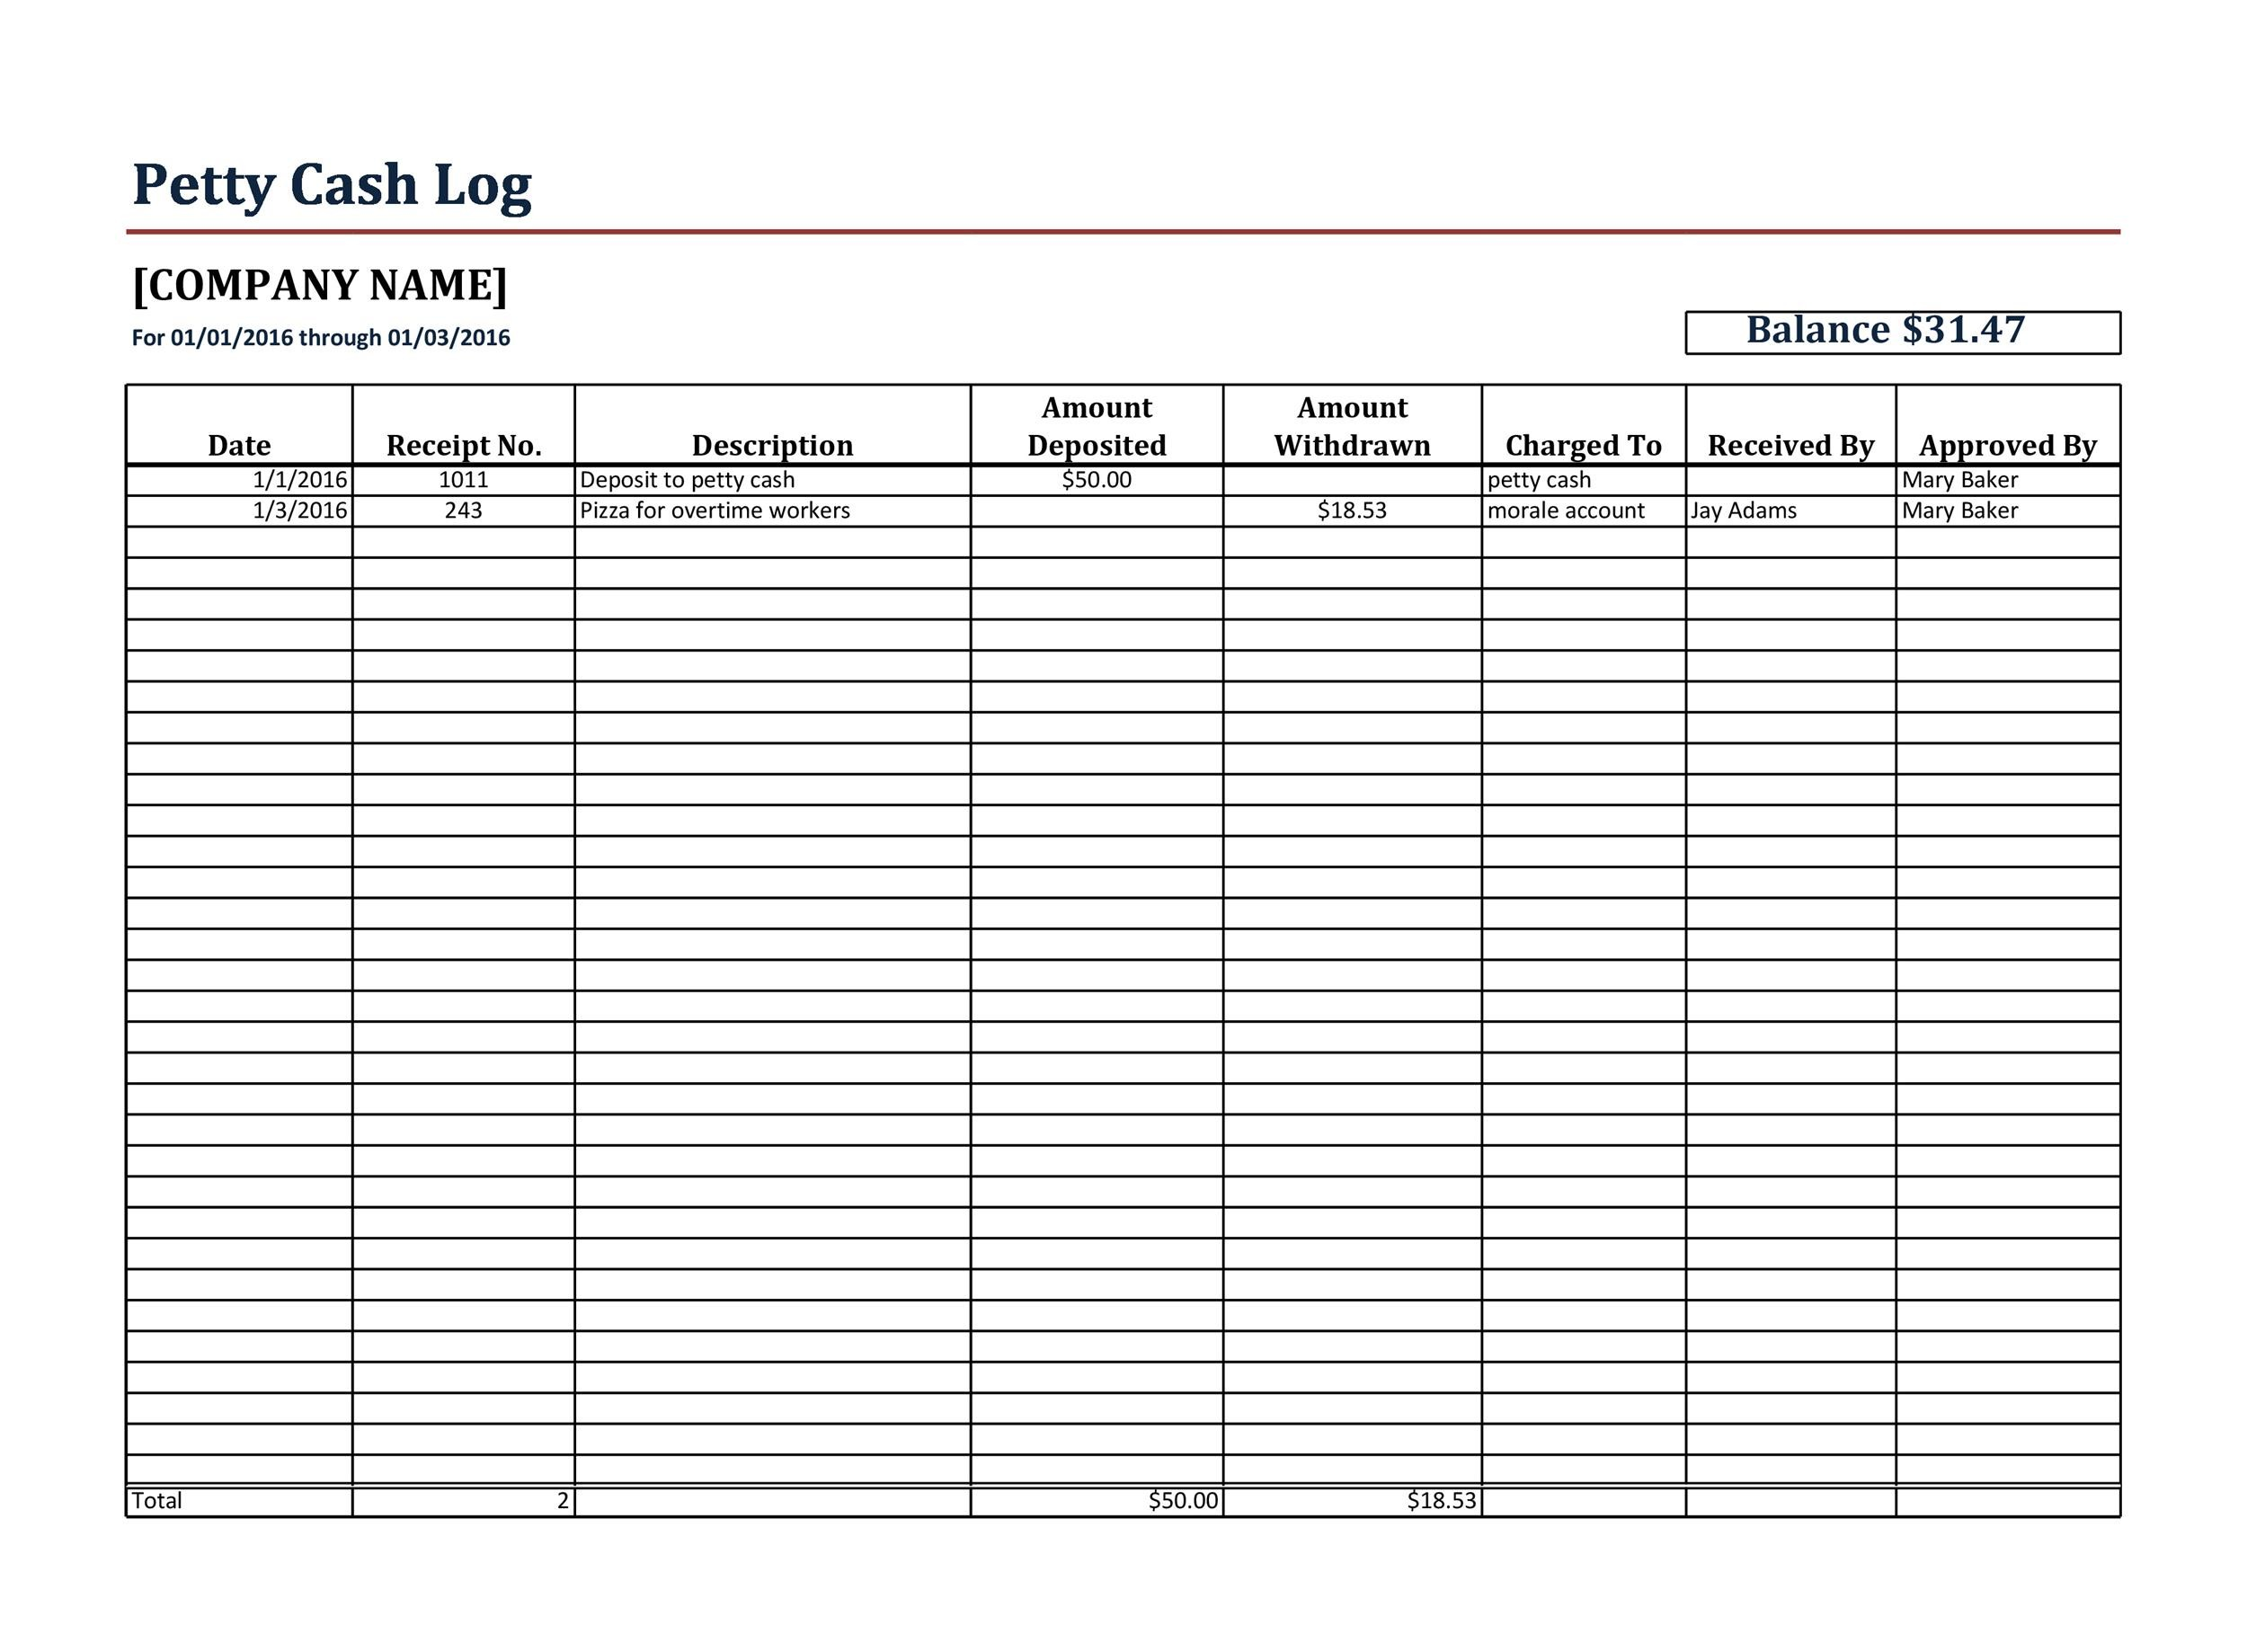 40 Petty Cash Log Templates & Forms [Excel, Pdf, Word] - Template Lab